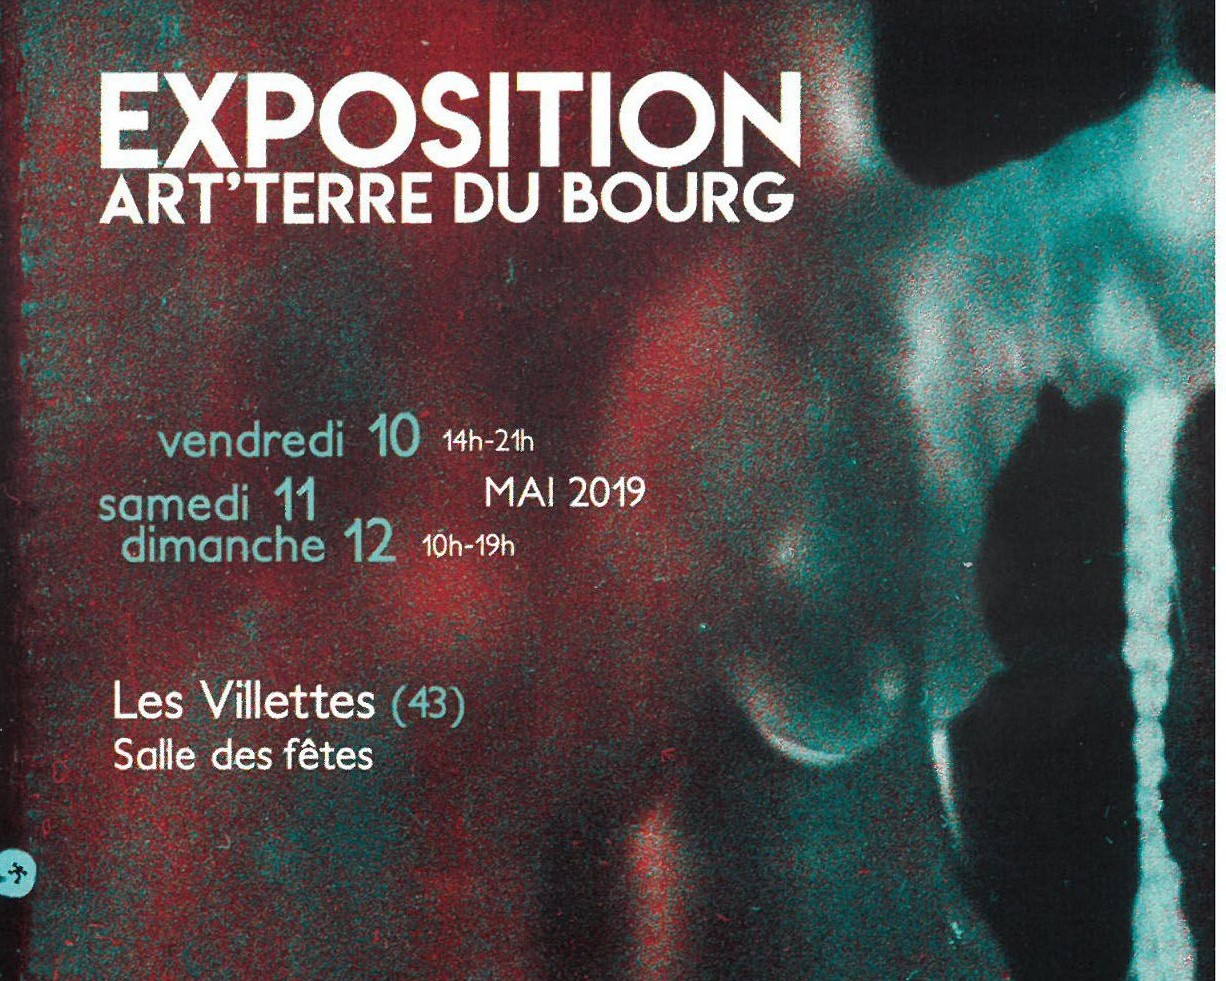 Week-end des artistes